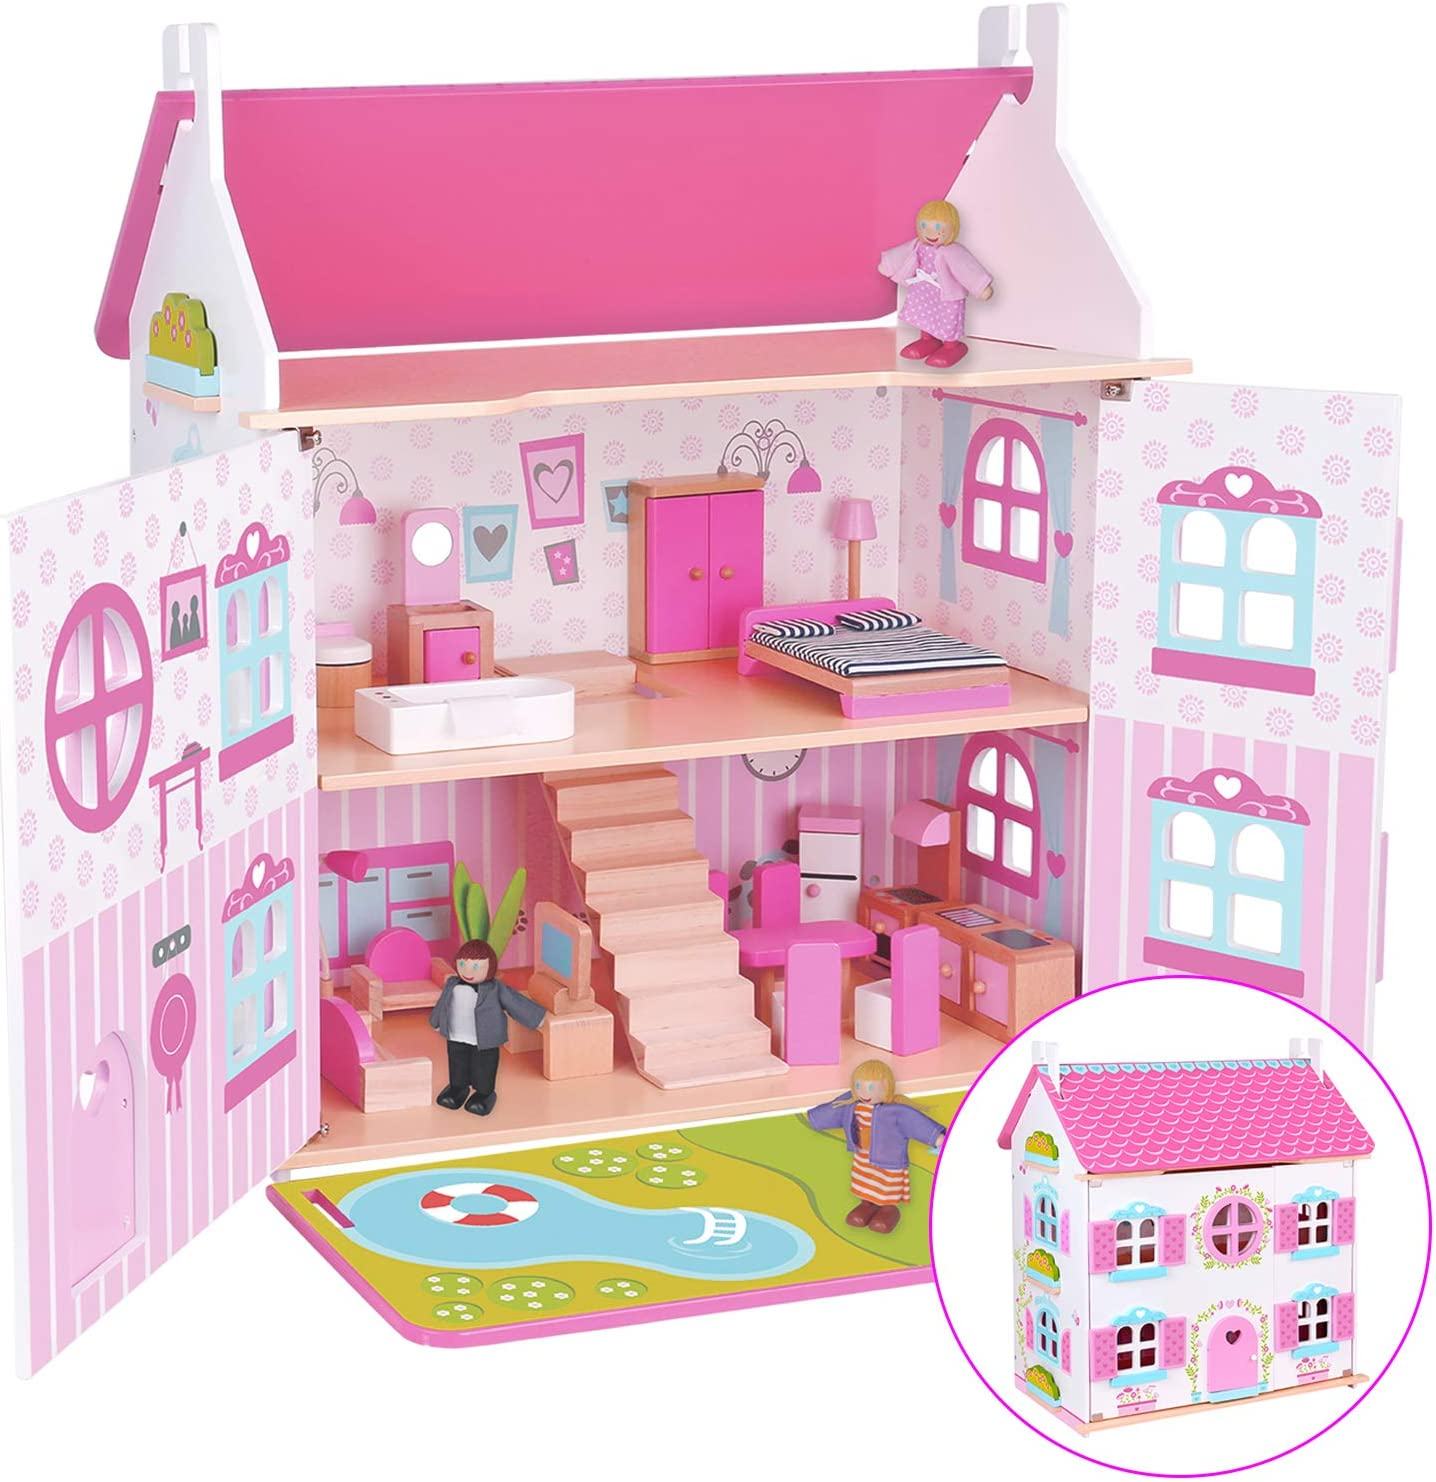 charaHOME Wooden Dollhouse Cottage DreamHouse with Furniture 32 pcs Girl's Doll House Set Pink